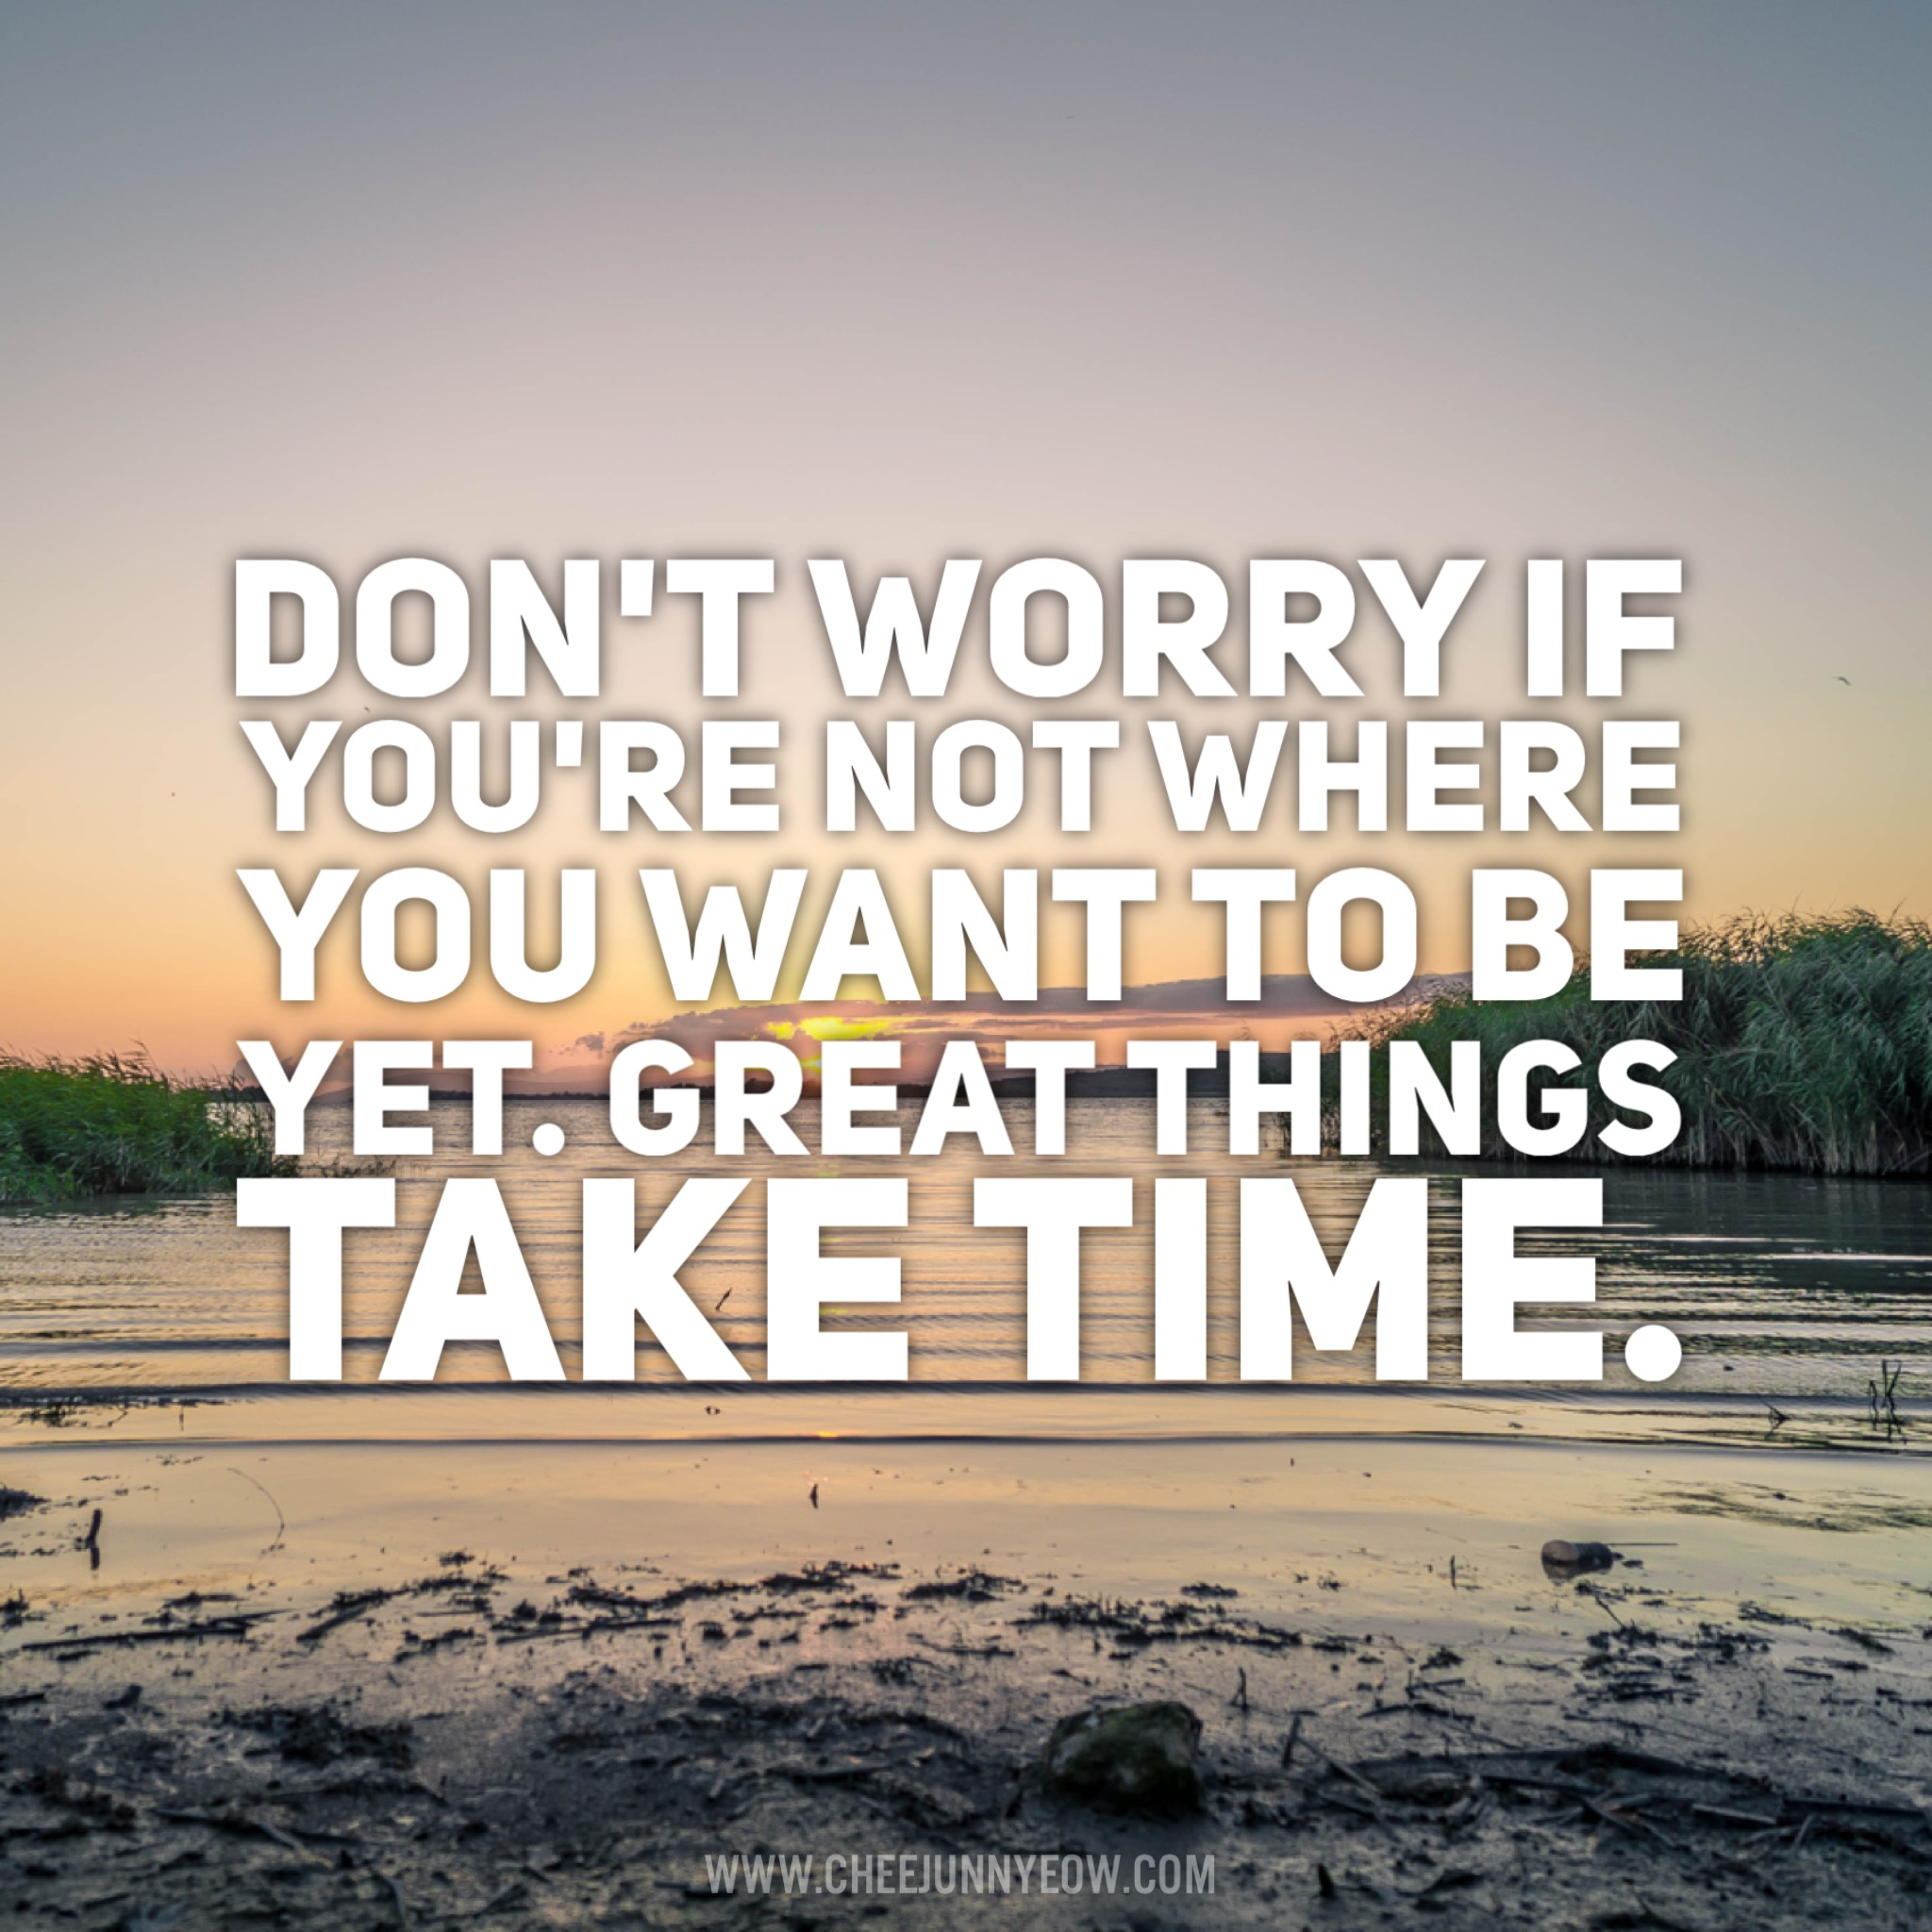 don't worry if you're not where you want to be. great things take time.